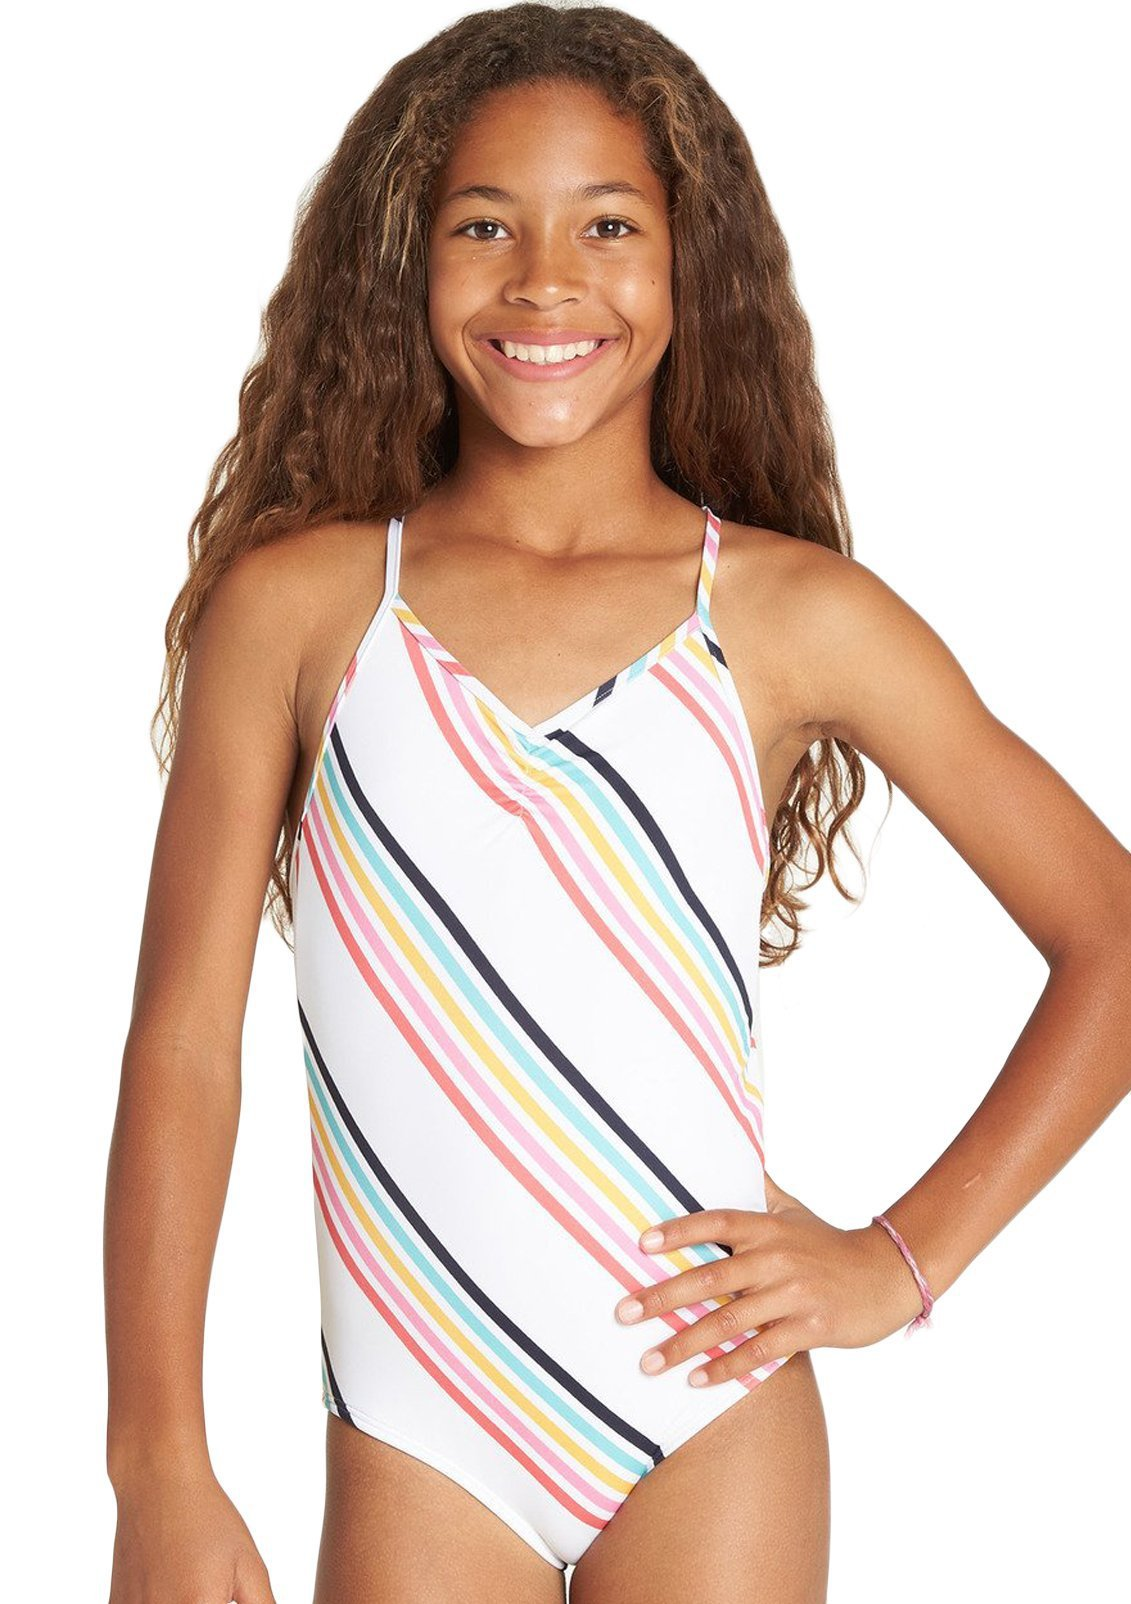 Girls Seeing Rainbows One Piece Swim